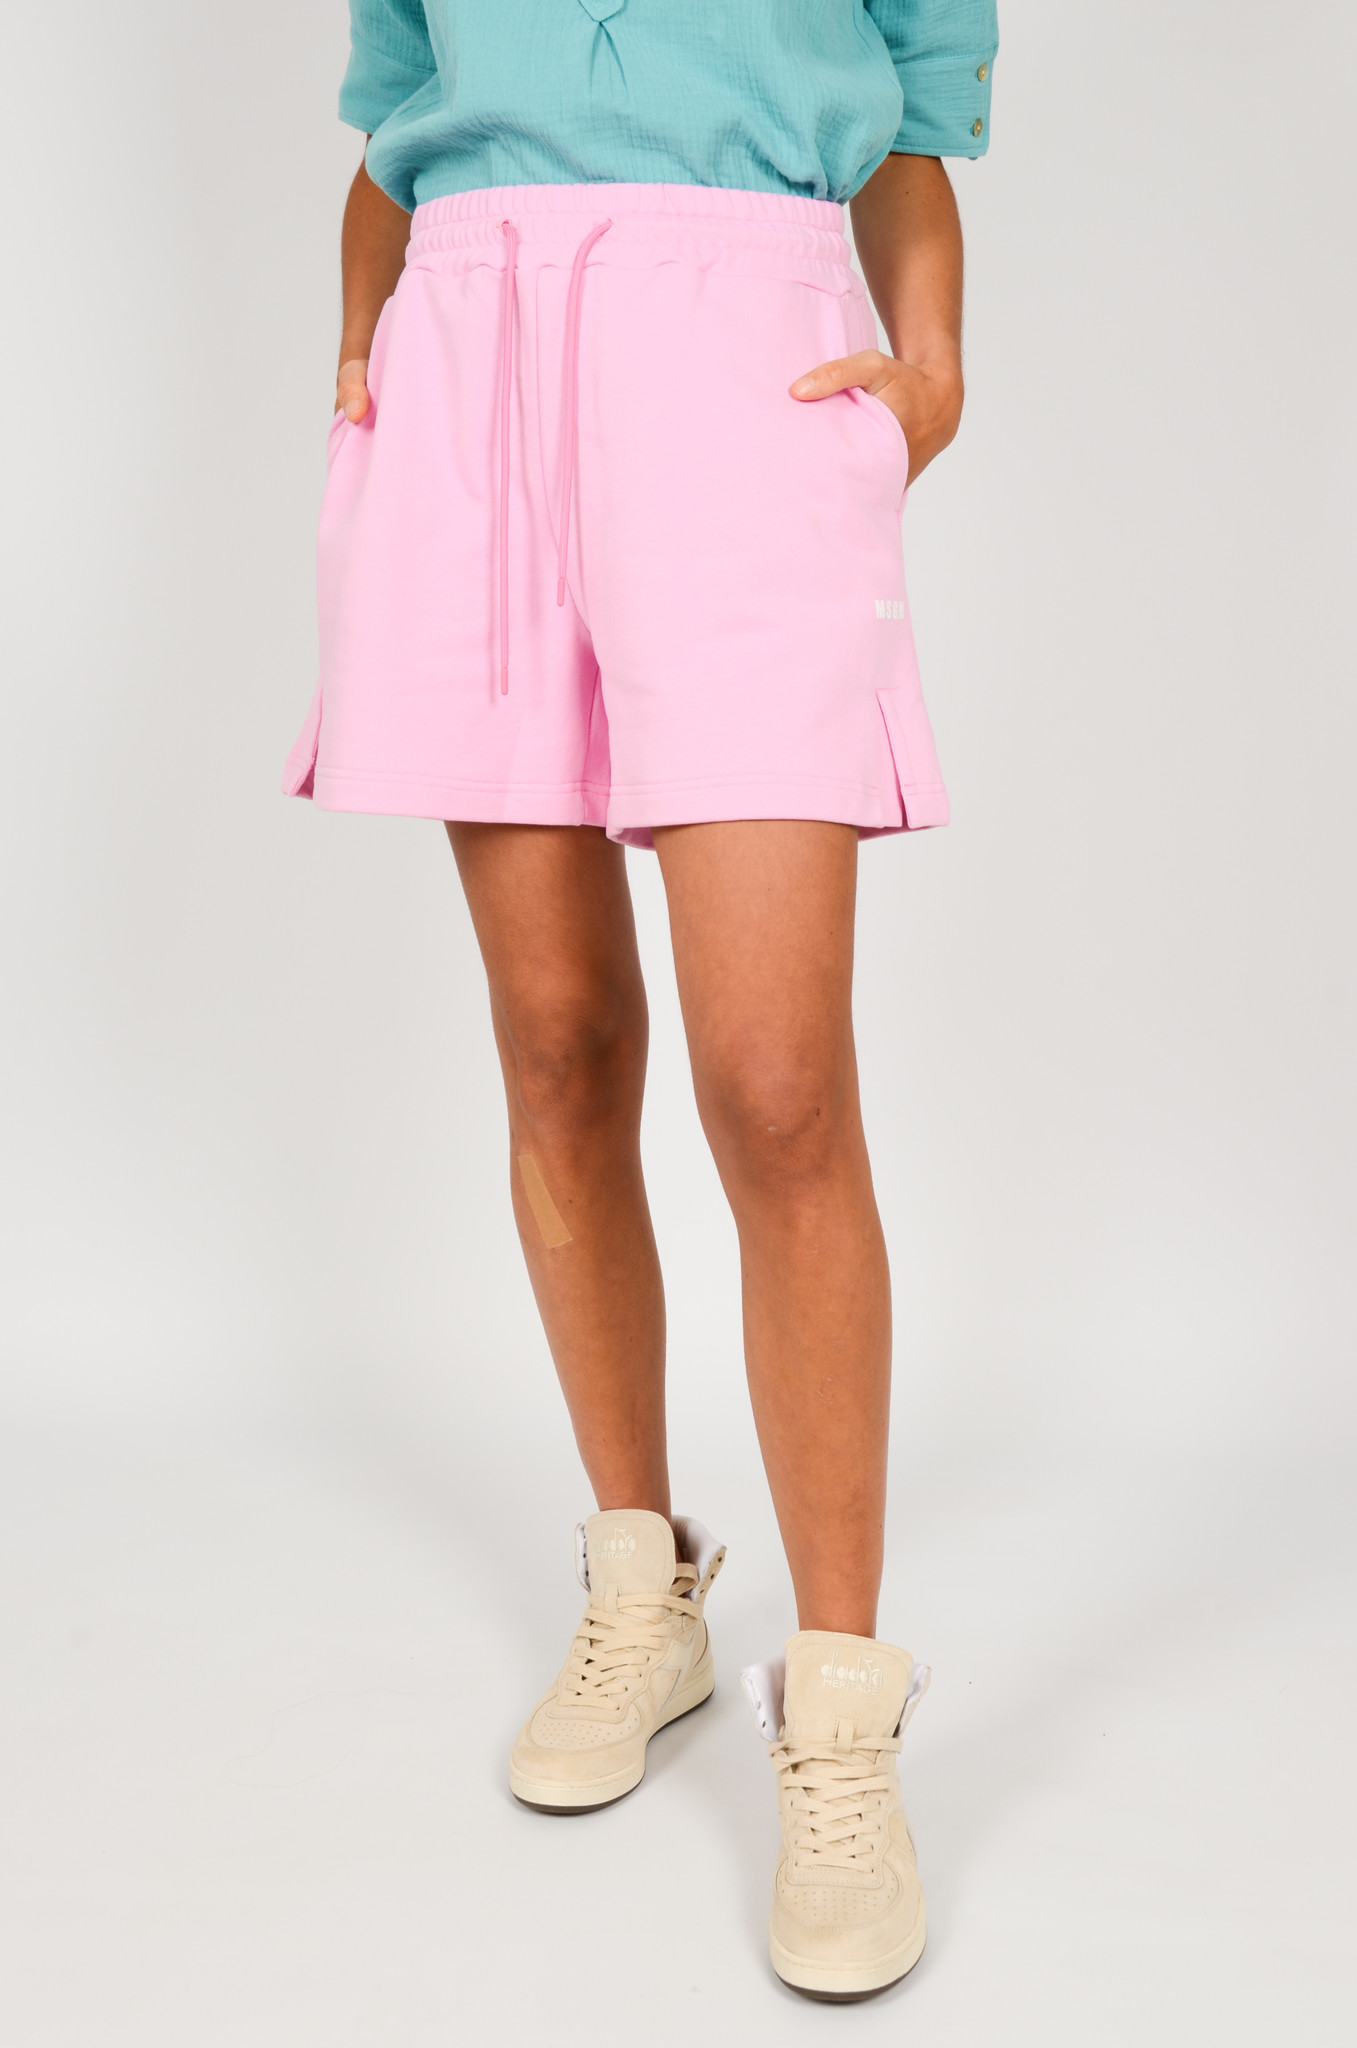 SWEAT SHORTS IN PINK-1